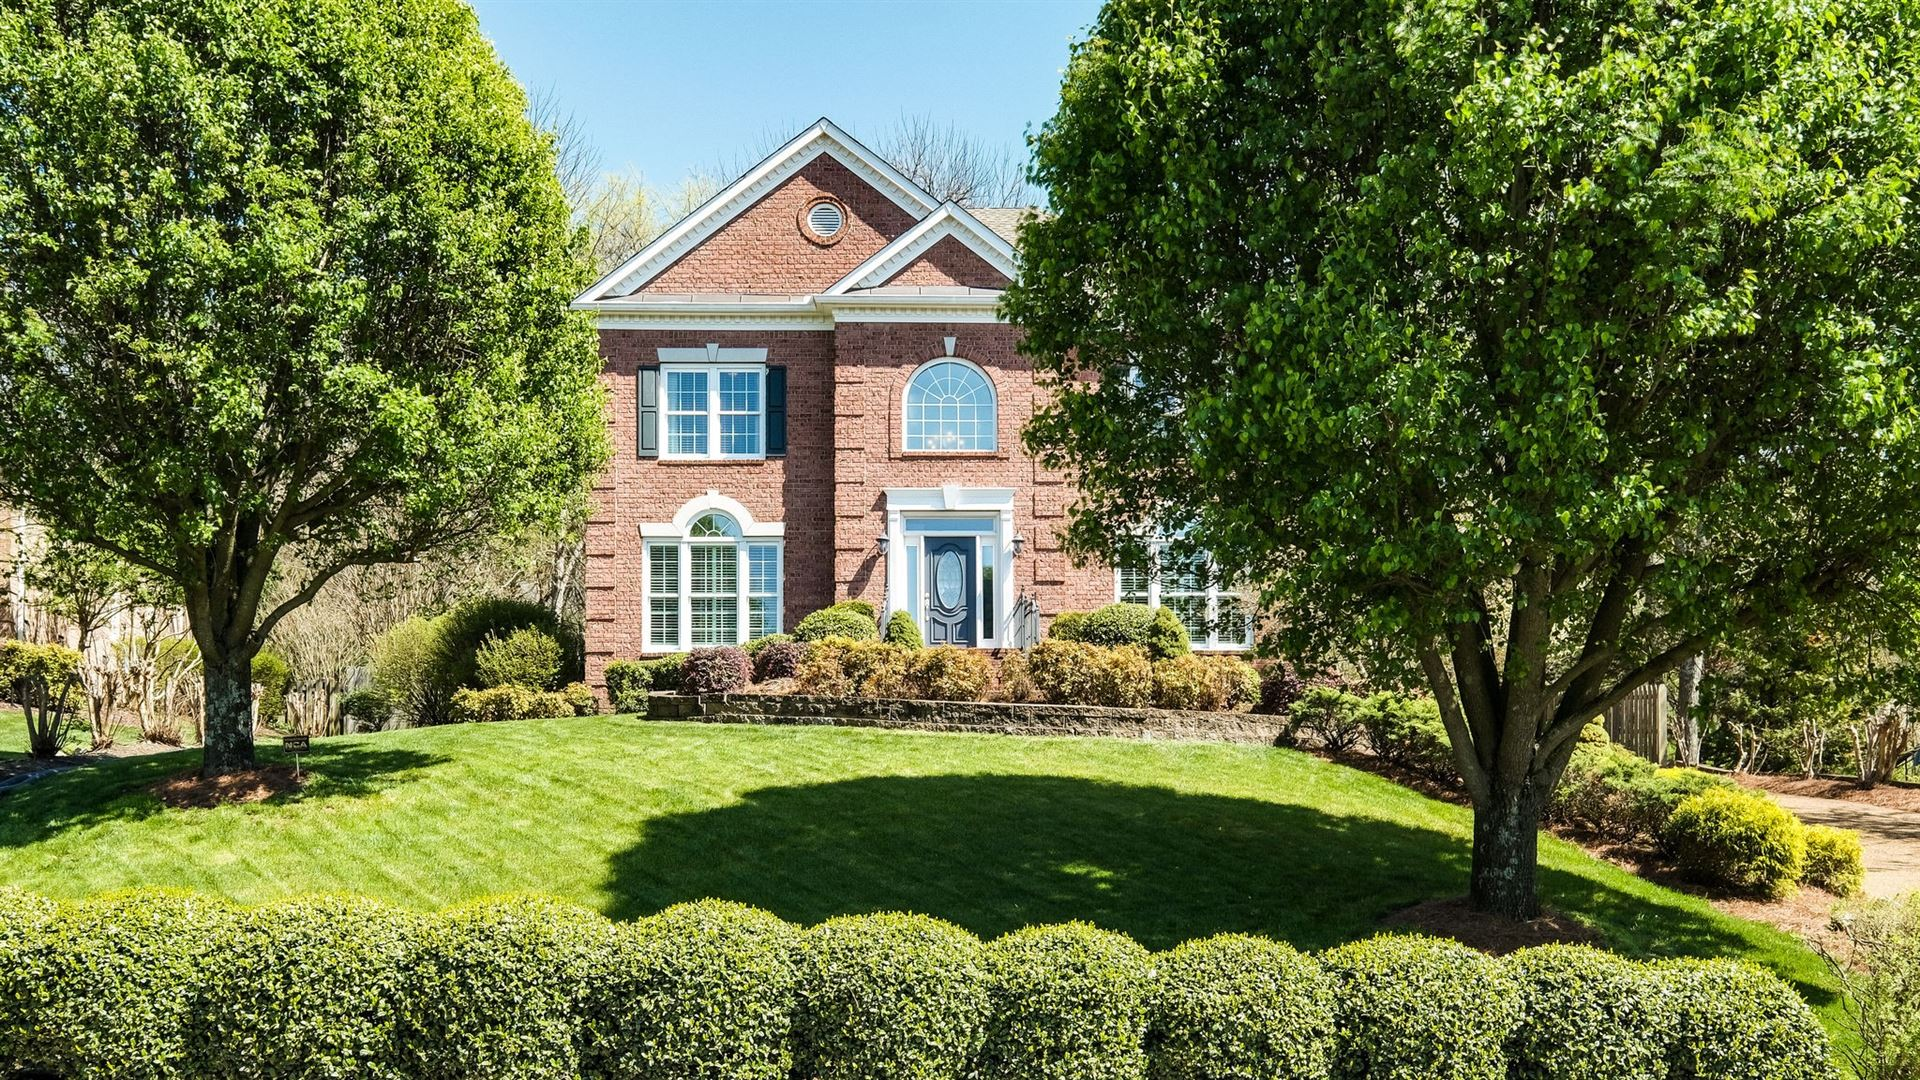 Photo of 9450 Norwood Dr, Brentwood, TN 37027 (MLS # 2138293)